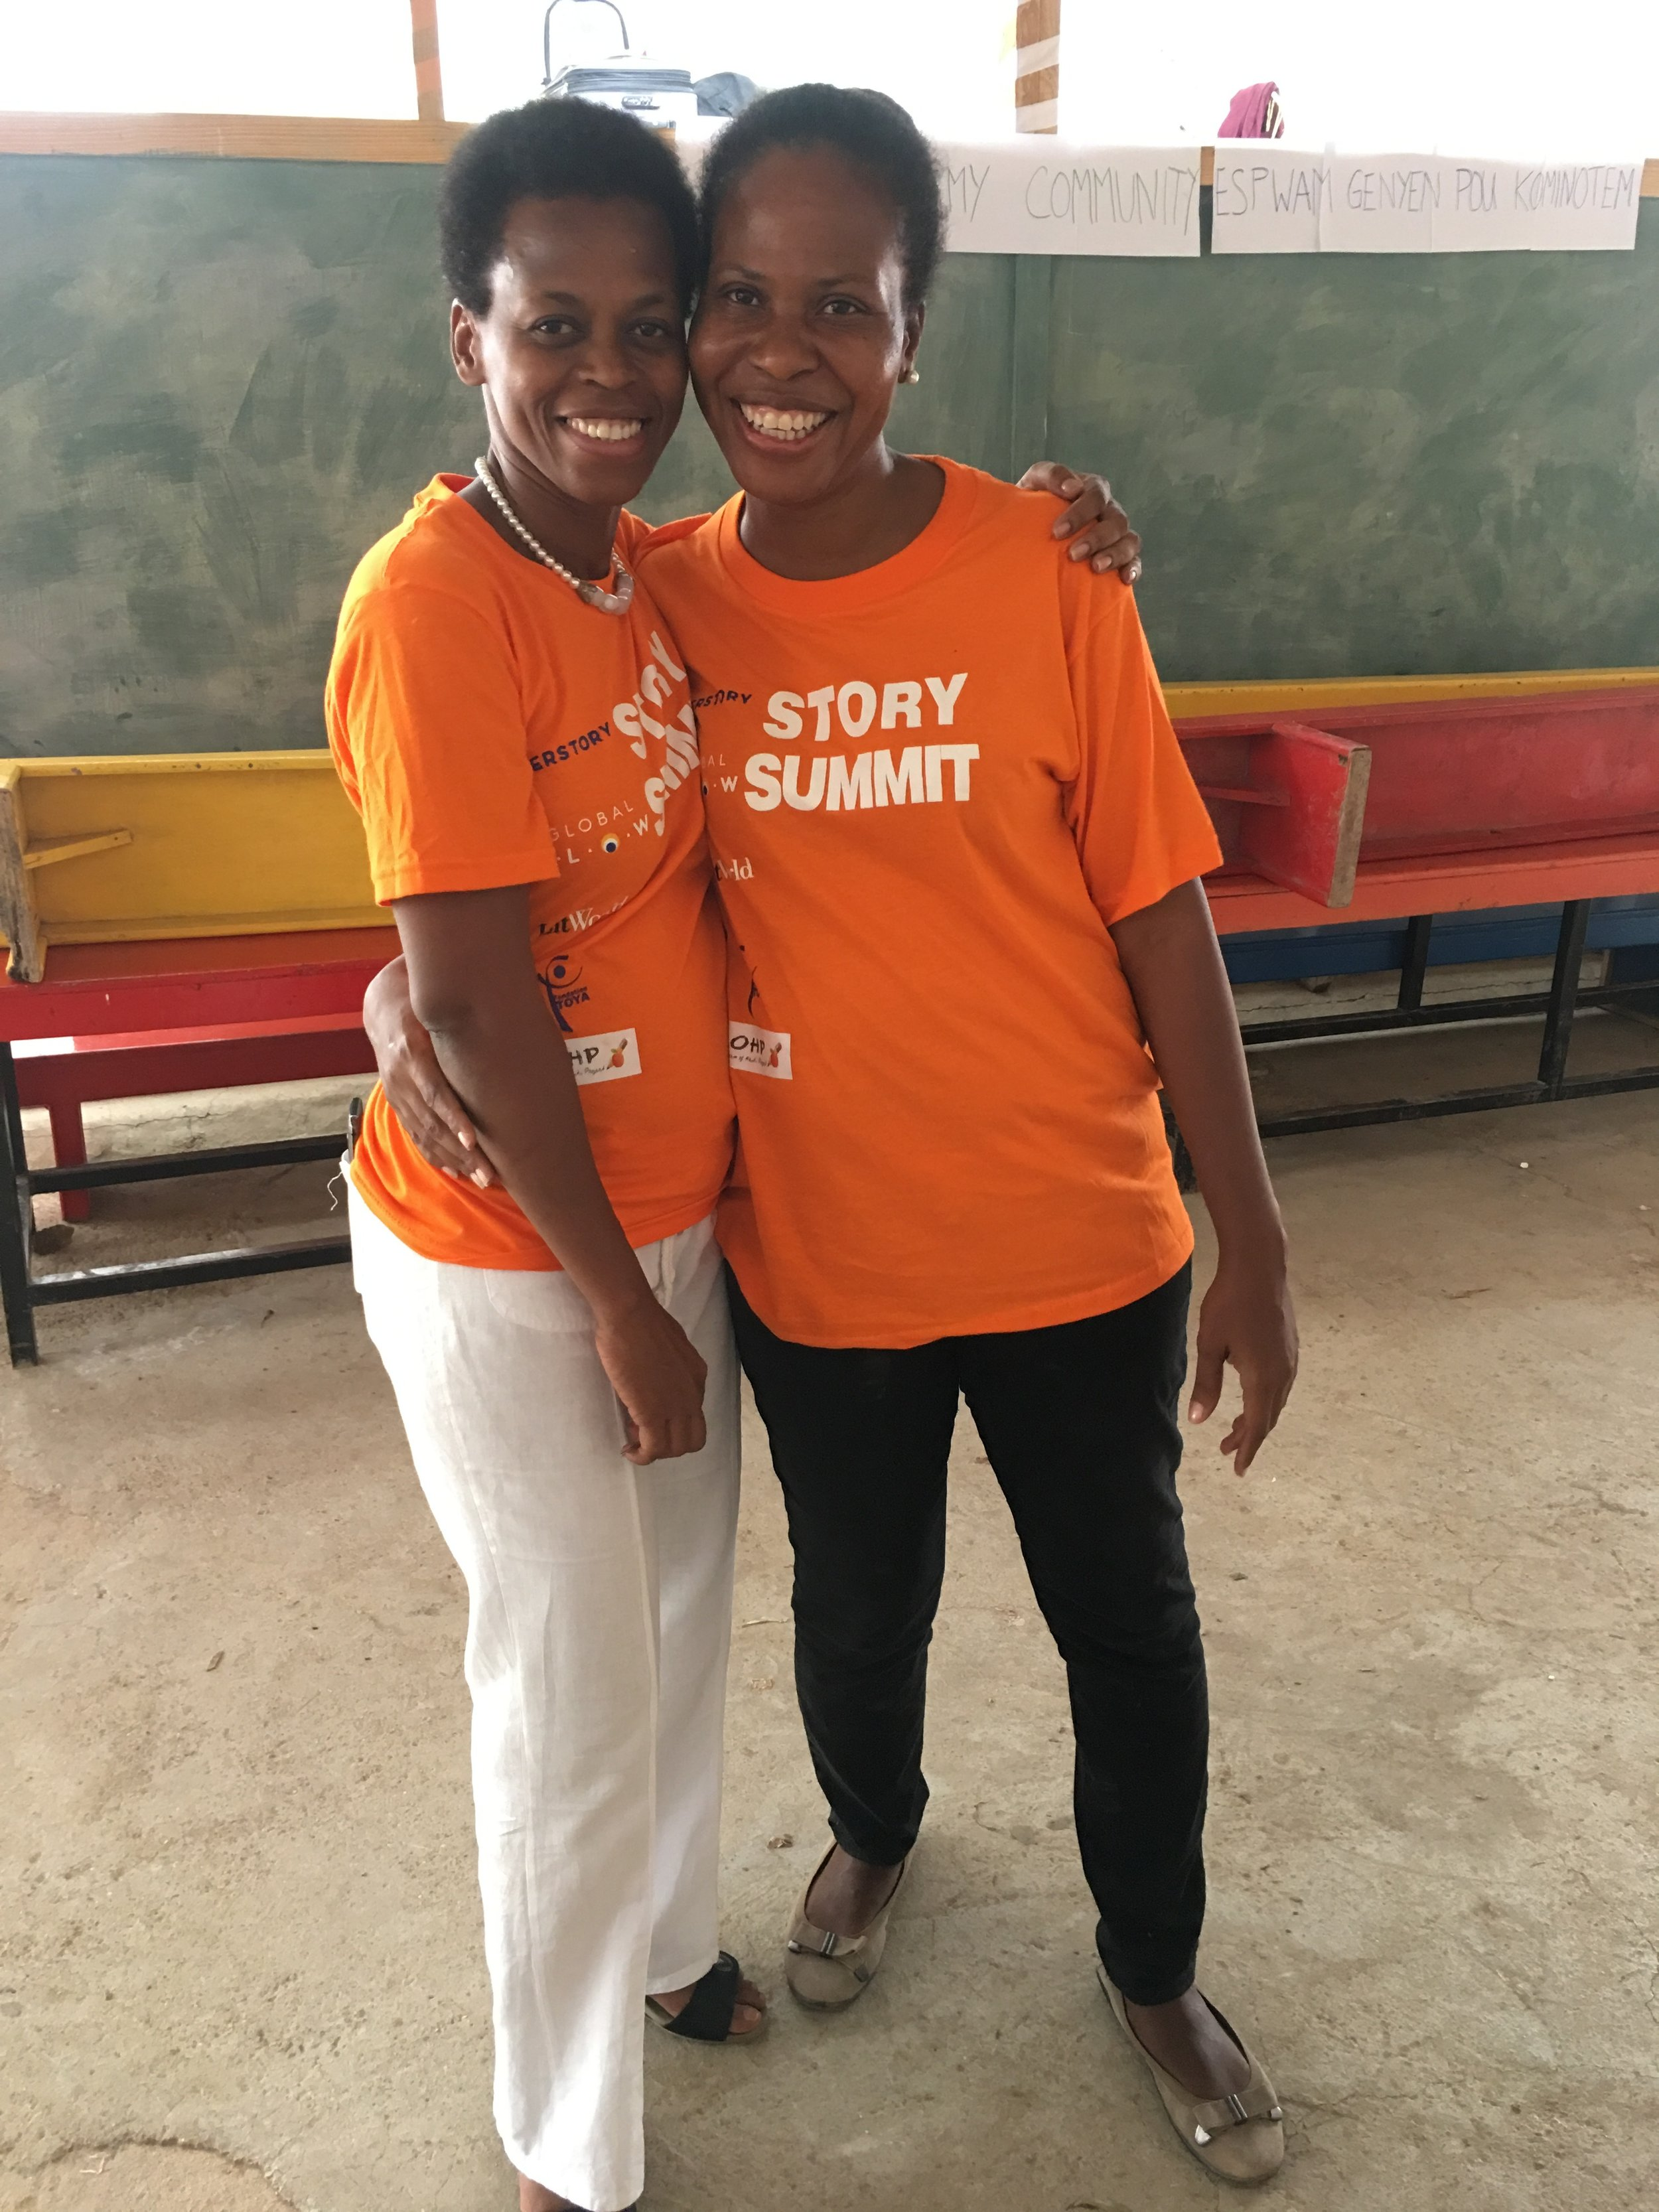 The Executive Director of Fondation TOYA, Nadine (left) with the Executive Director of COHP, Dominique (right).